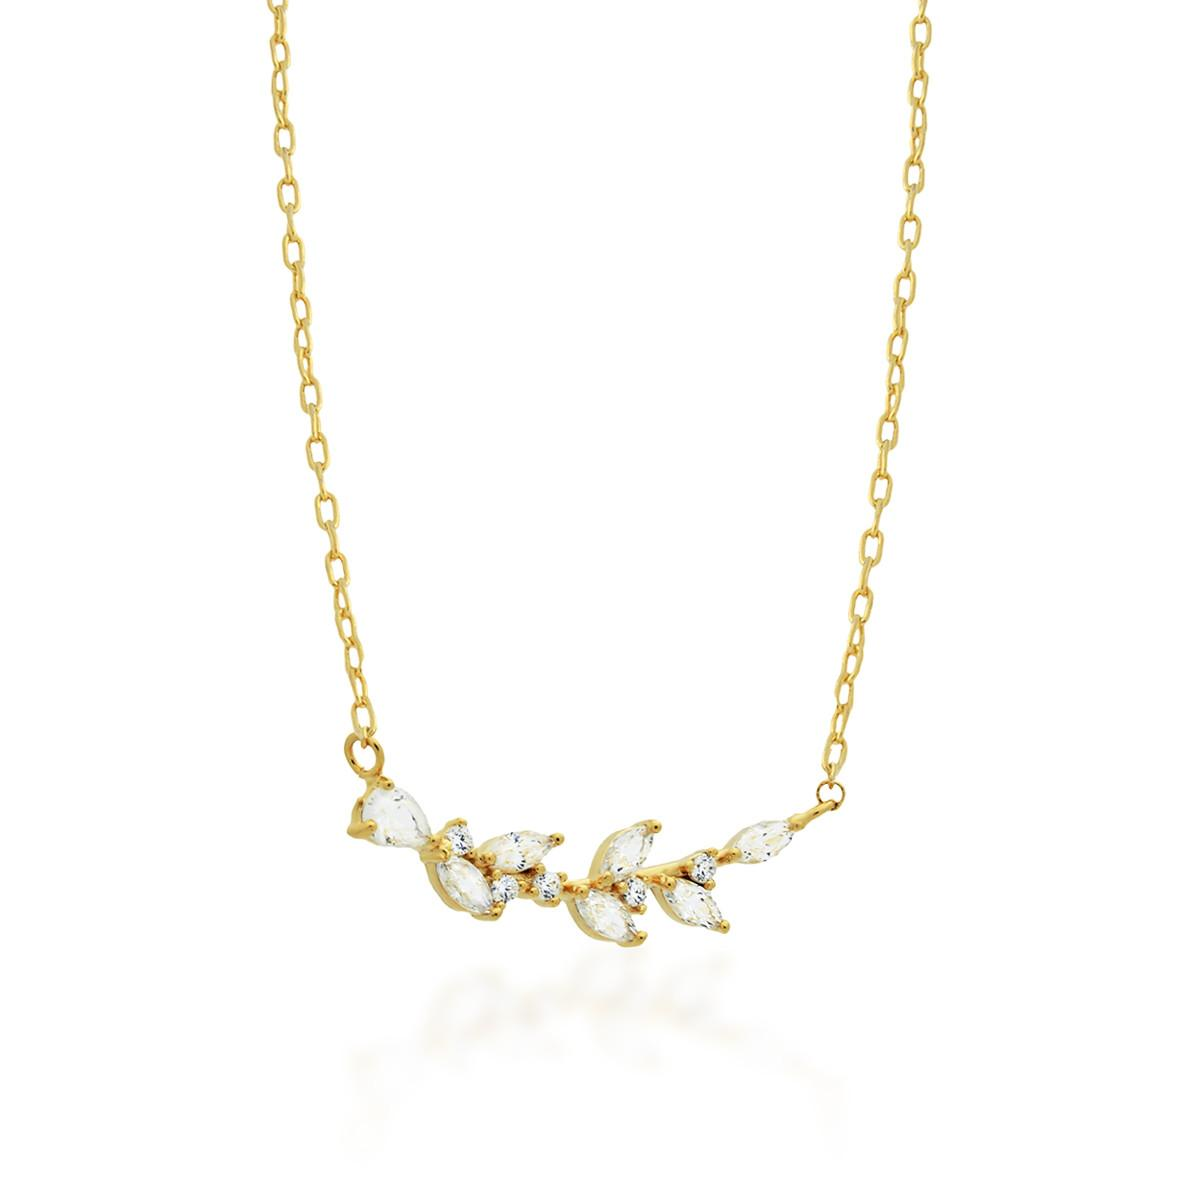 Tzaro Jewelry 14k Gold Filled Twig Necklace Delicate